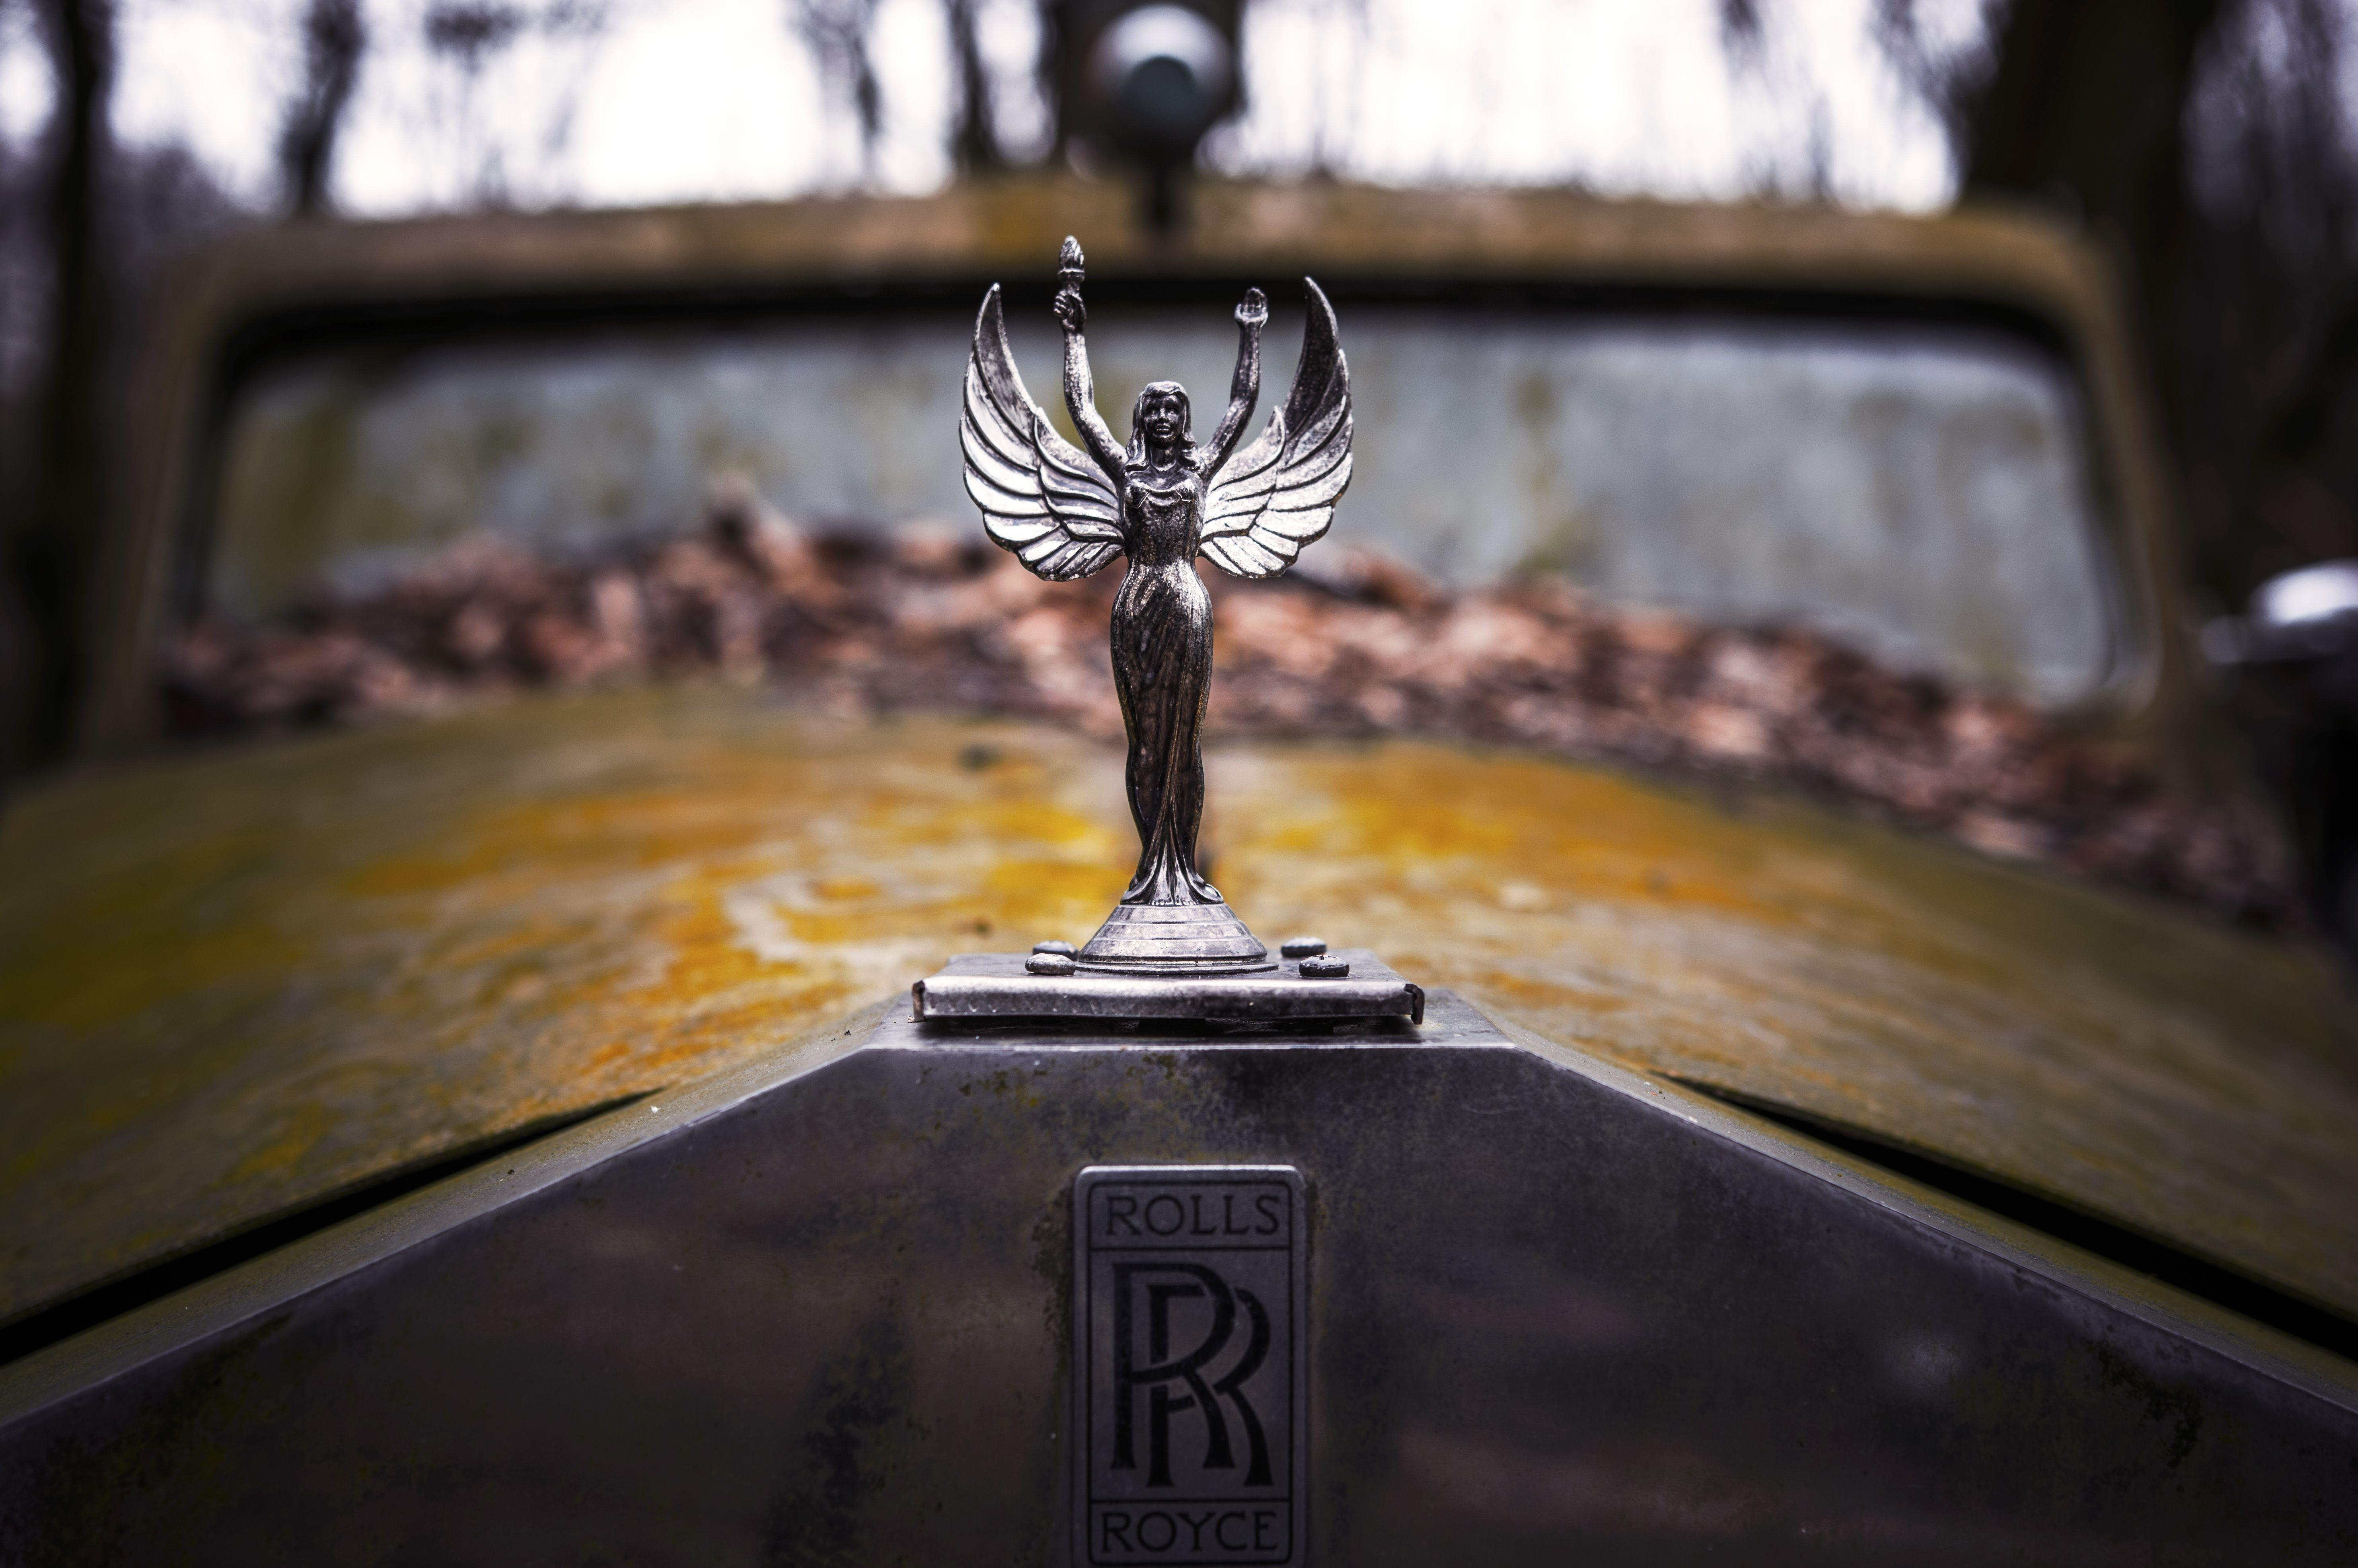 rolls royce logo wallpapers wallpaper cave